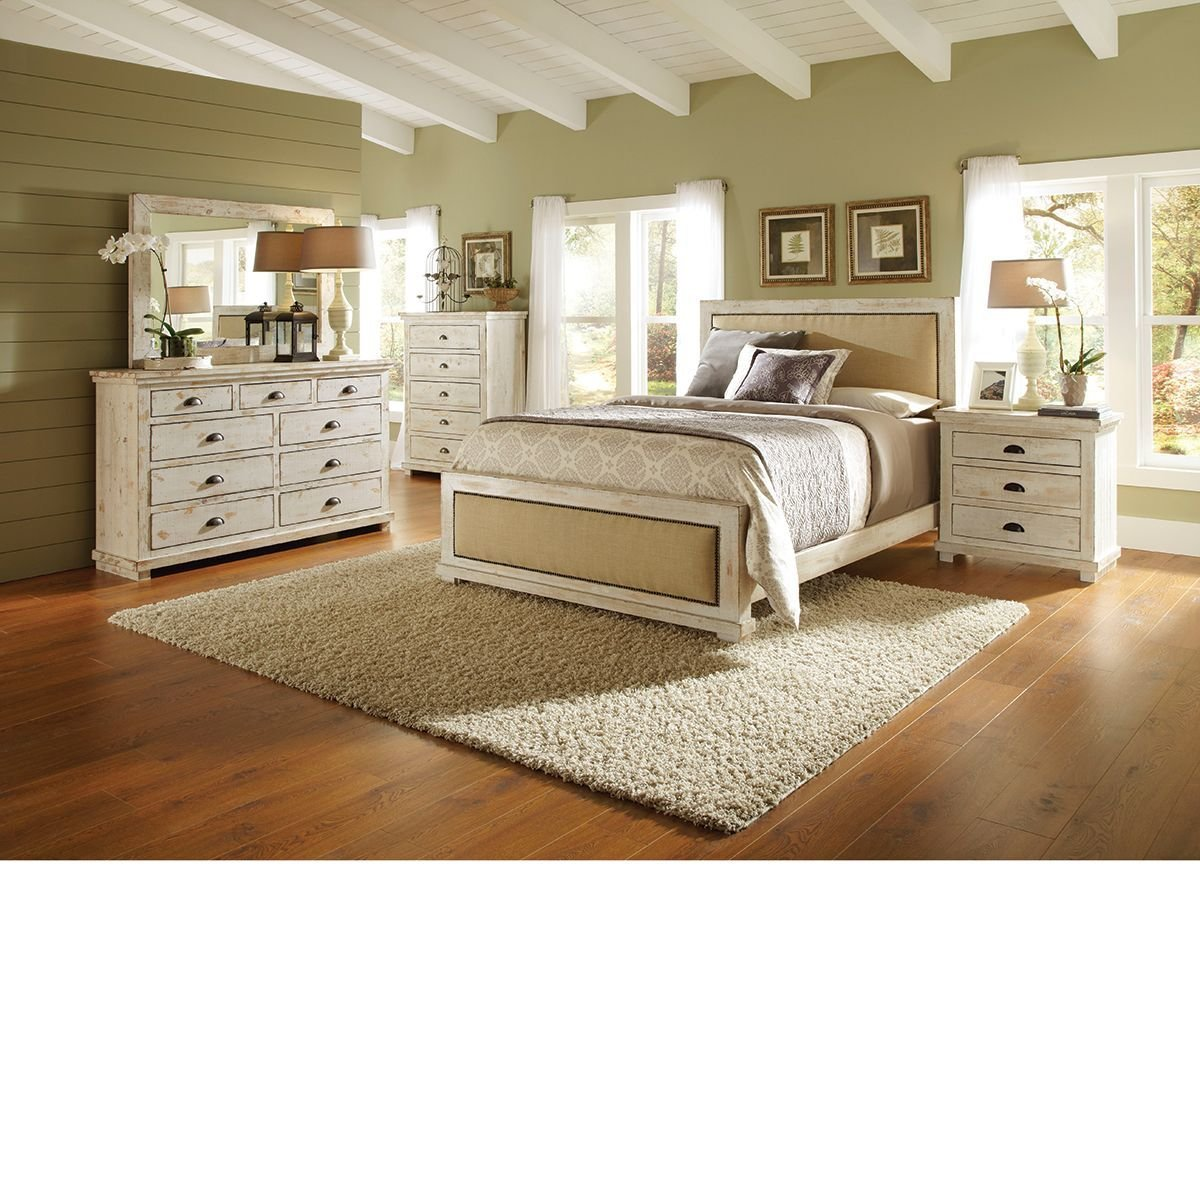 Best The Dump Furniture Willow White Master Distressed With Pictures